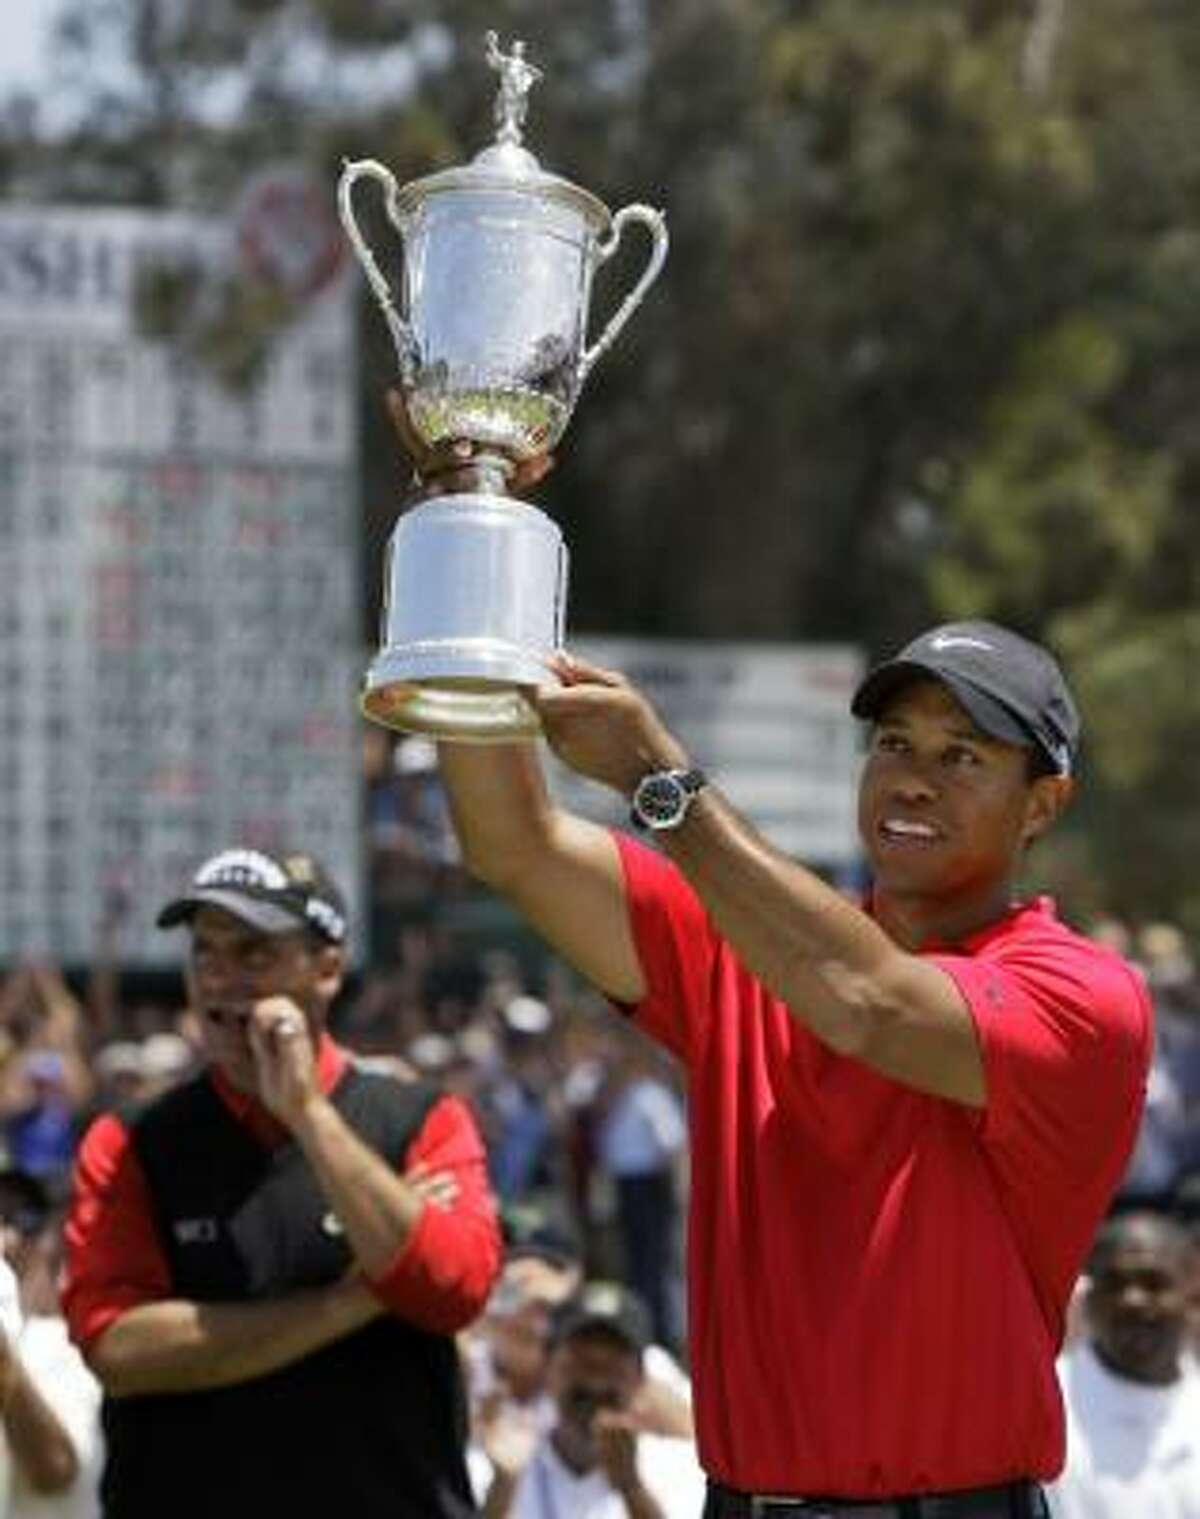 America watches Tiger Woods for his immense talent as a golfer, not his personal habits, Jerome Solomon writes.